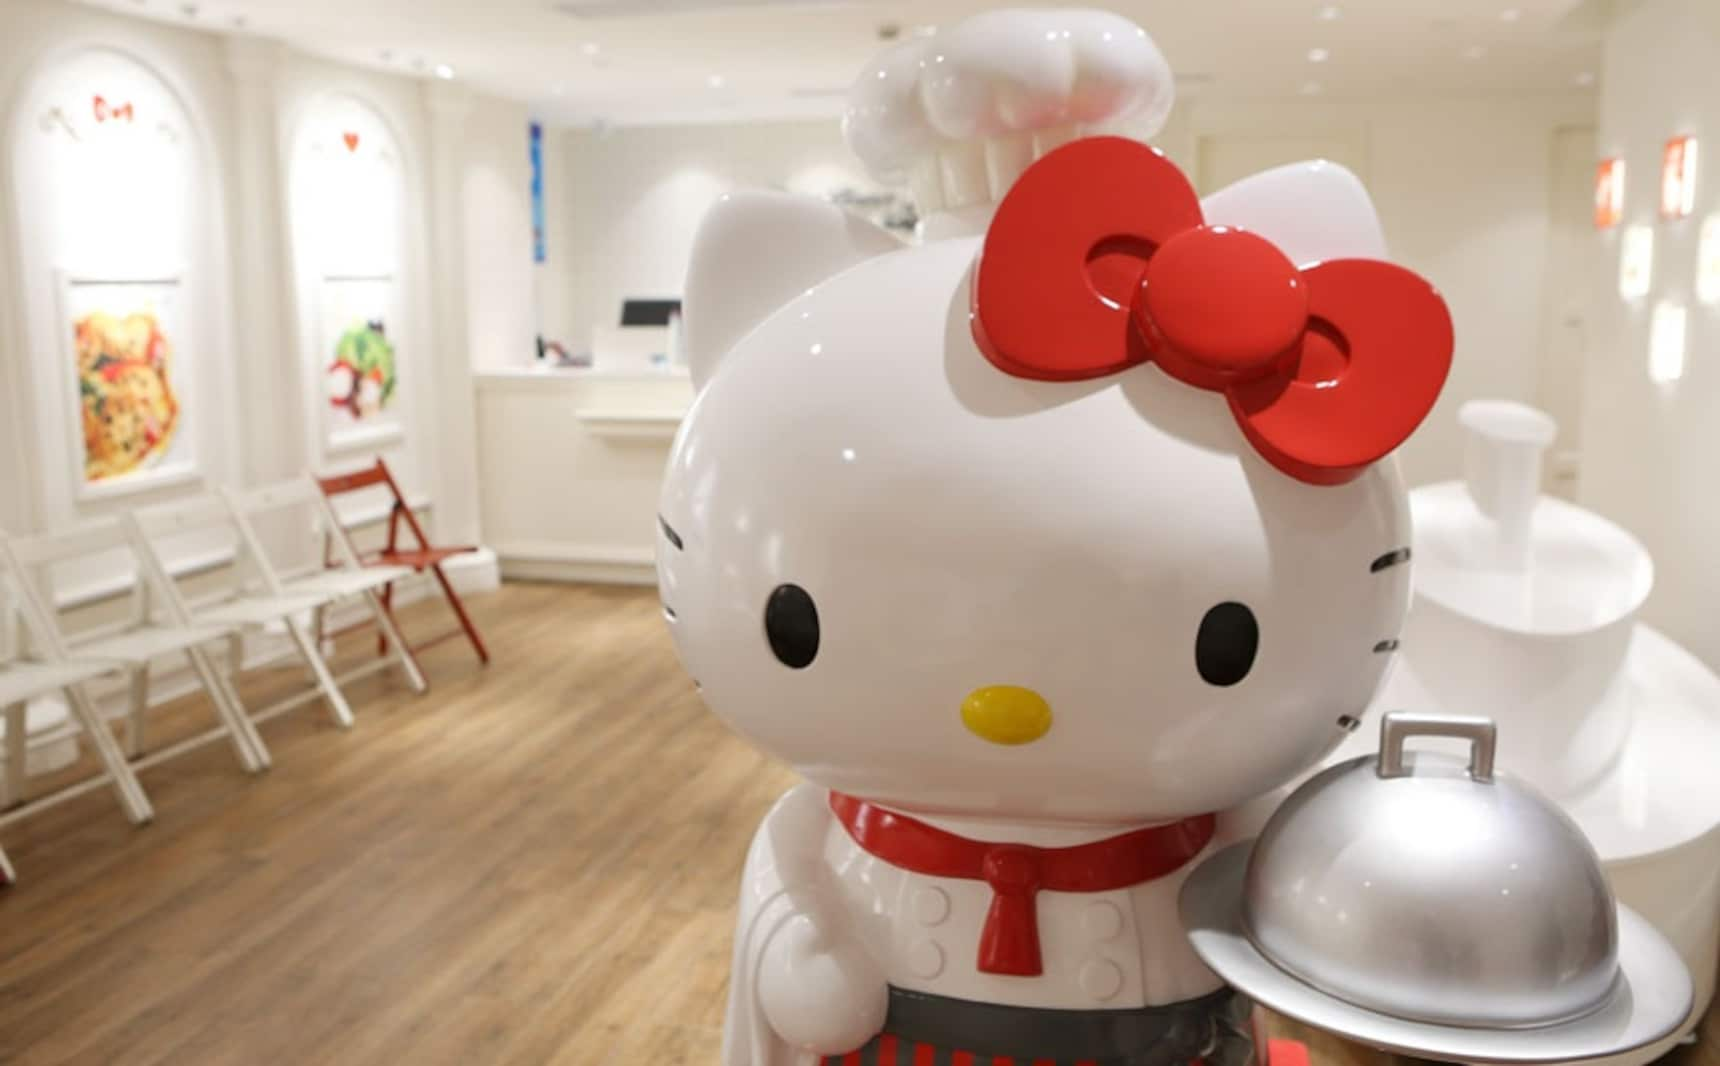 A New Kind of Kitty Café Opened in Shanghai